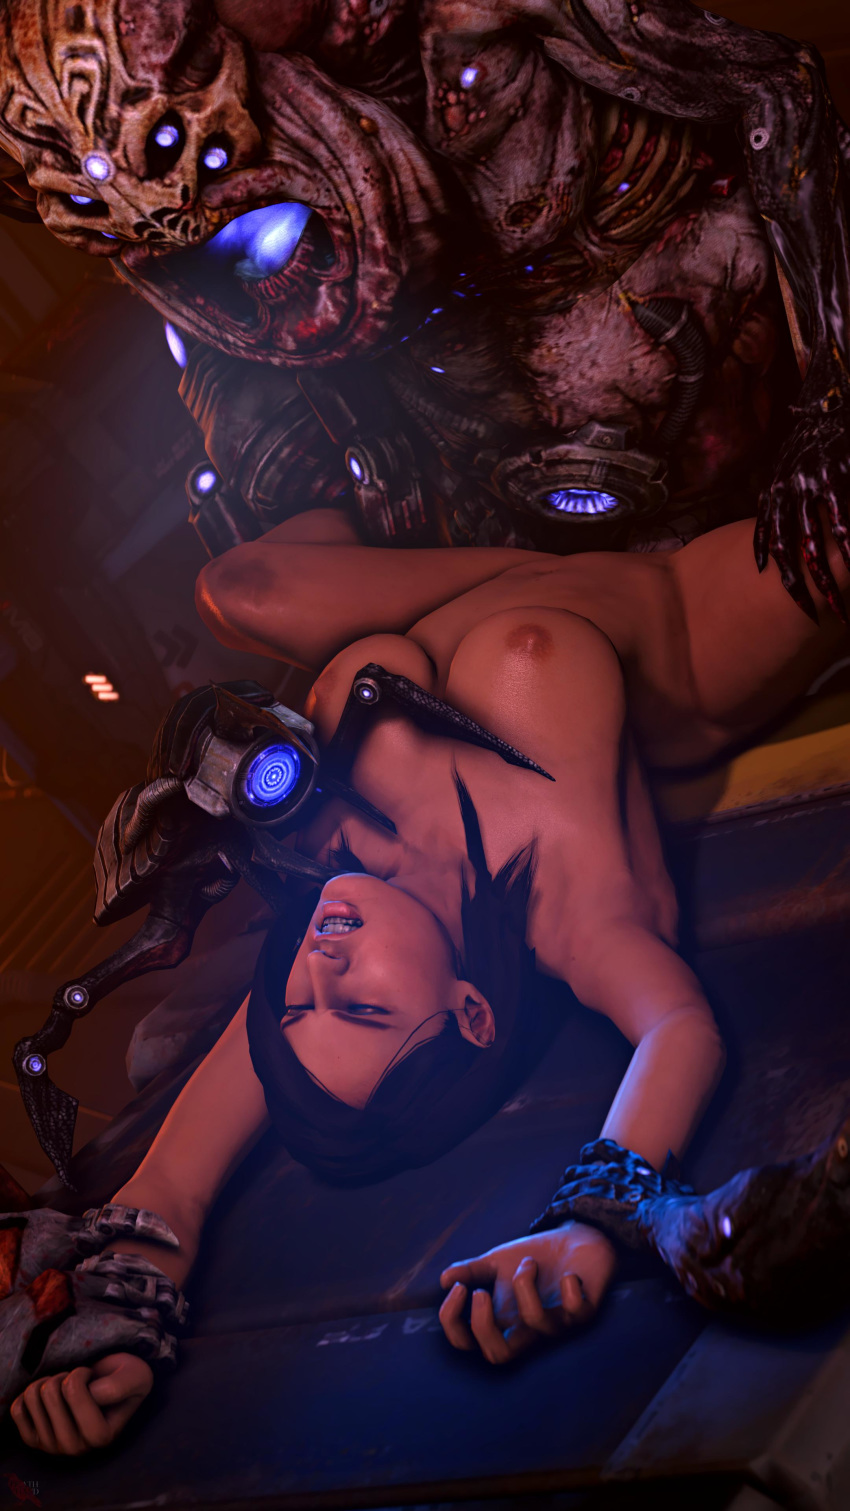 effect mass andromeda Dead by daylight jane thicc